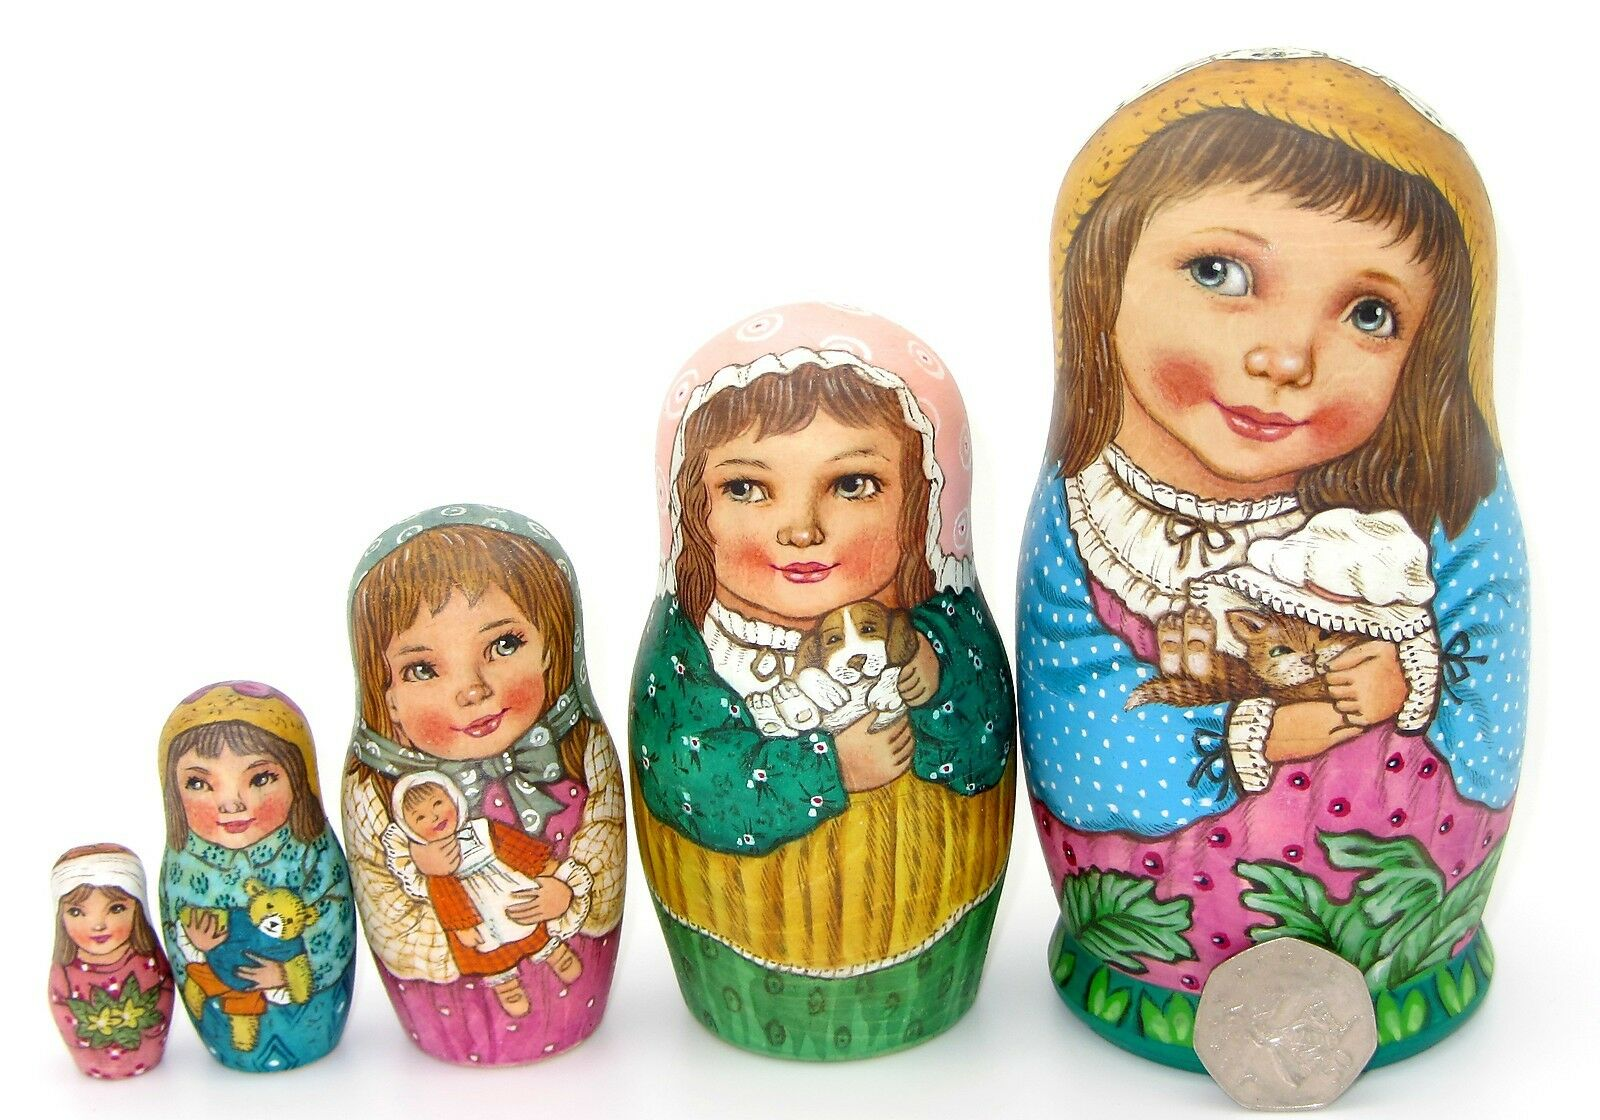 Russian Nesting Doll 5 Girls Kitten Puppy SOKIRKINA HAND PAINTED MATT Matryoshka